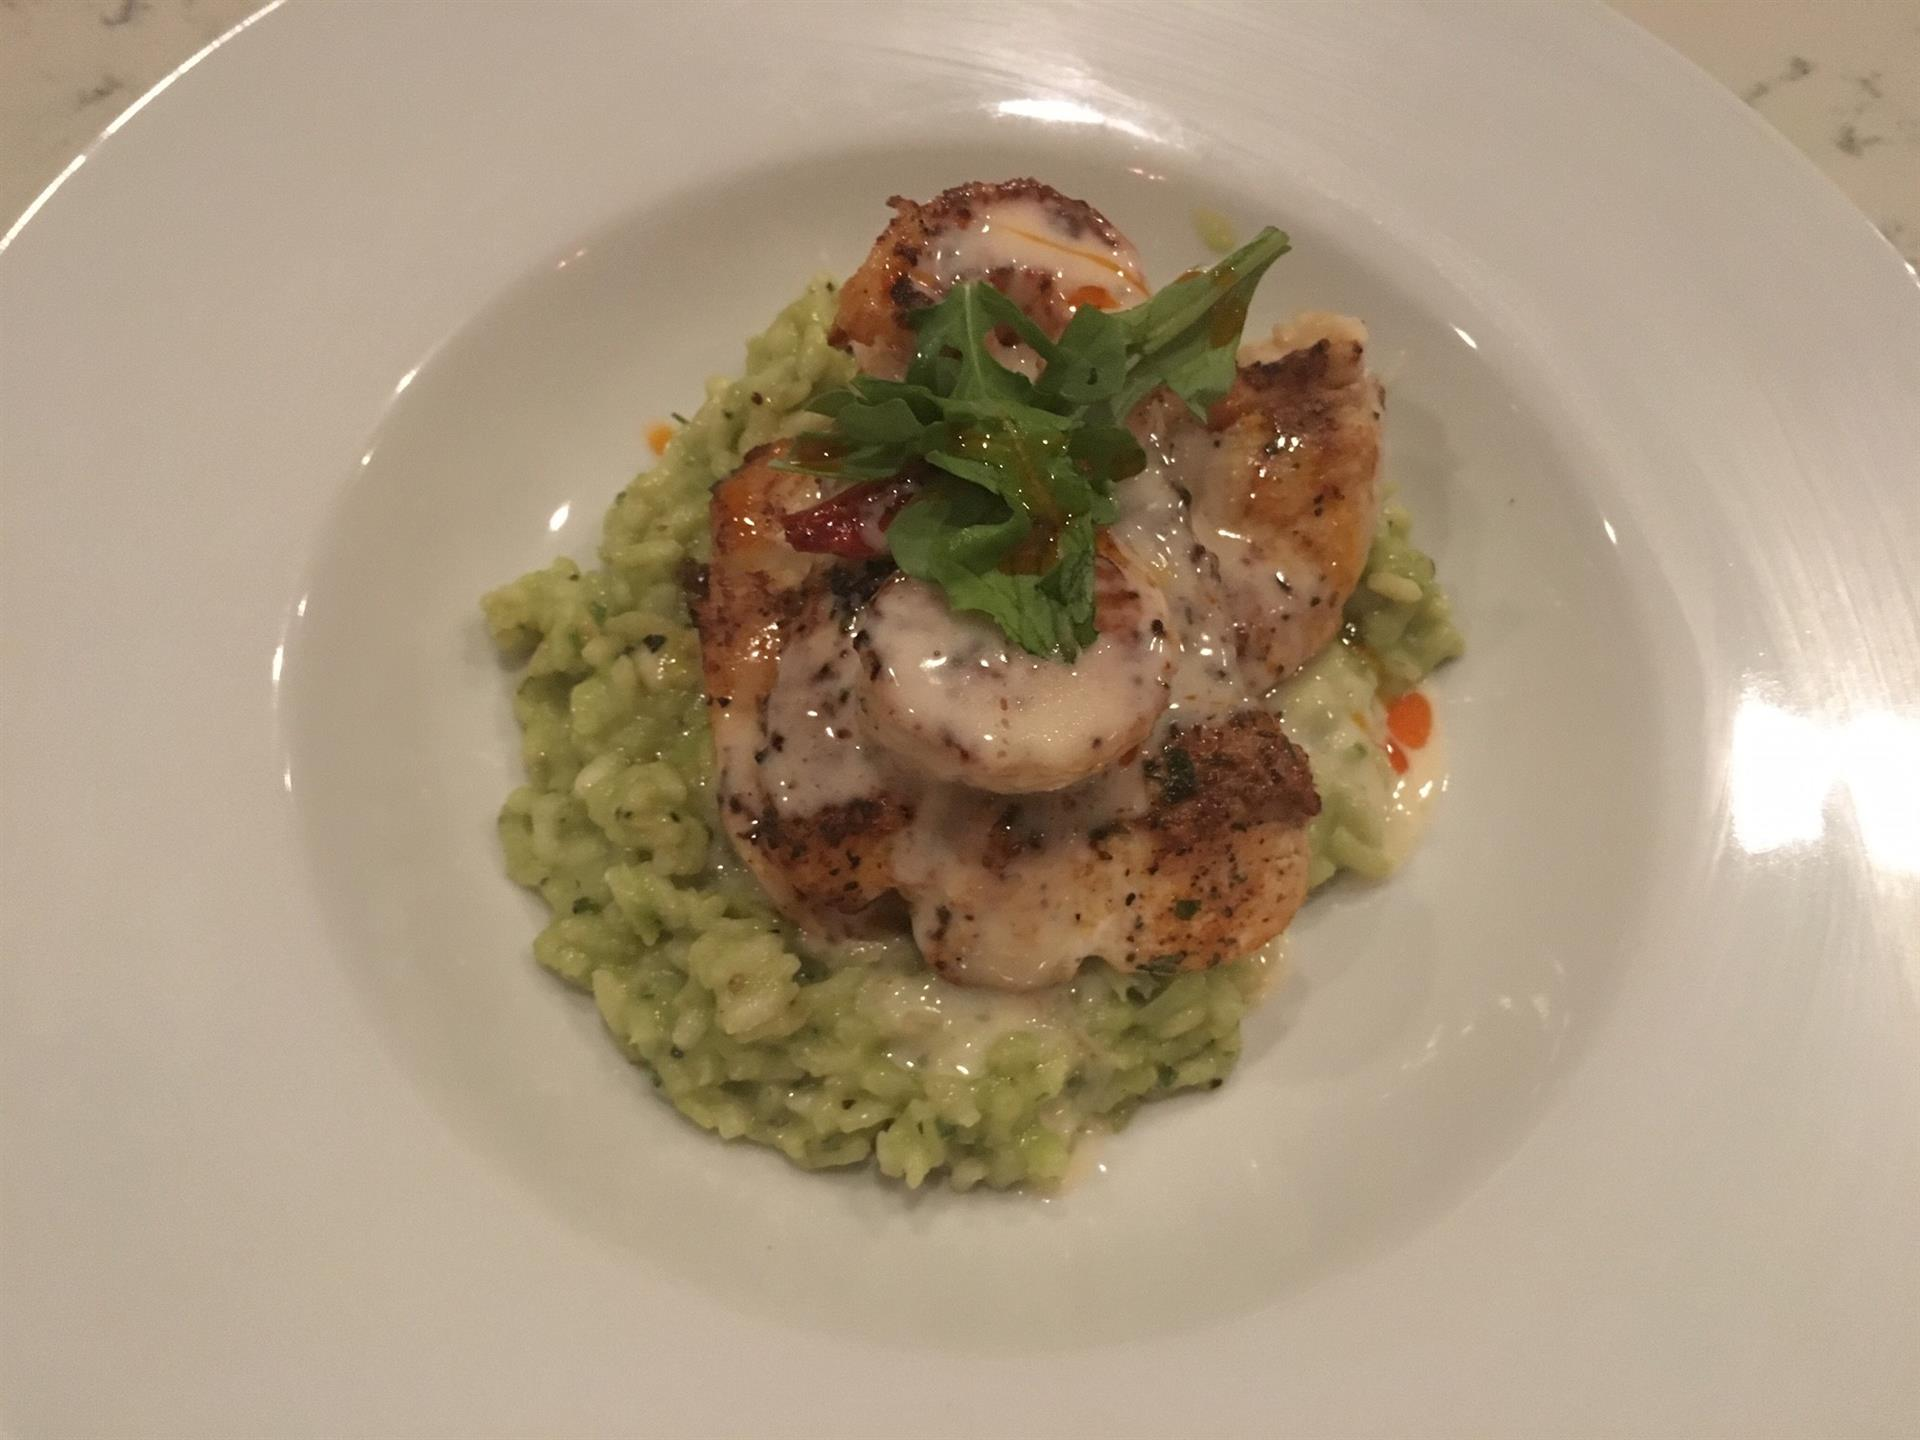 Sauteed scallops over risotto with basil